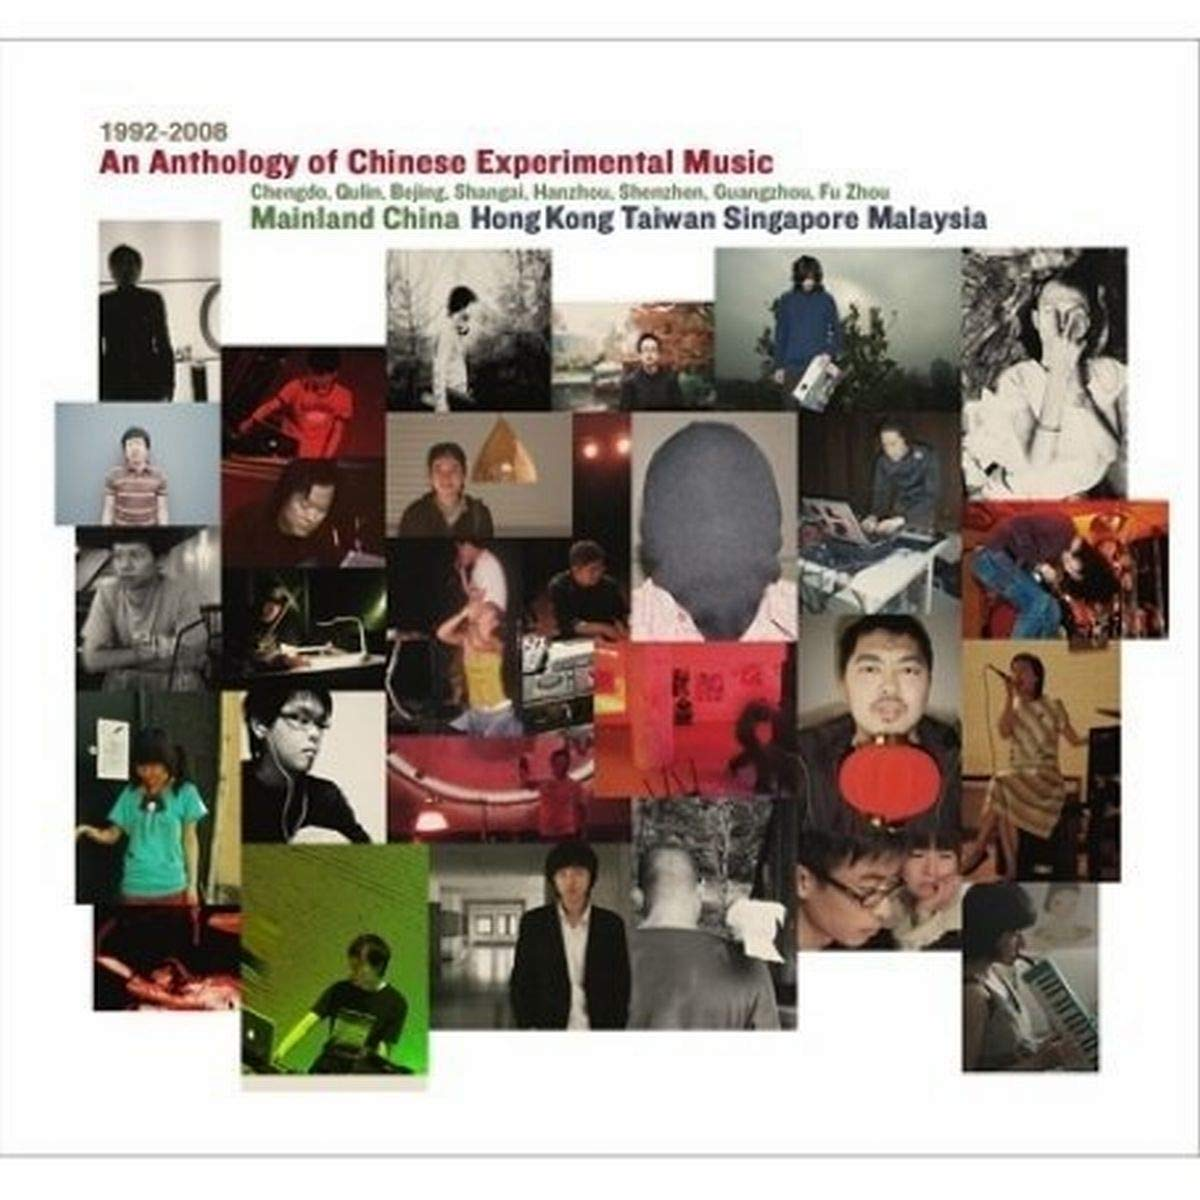 An Anthology Of Chinese Experimental Music 1992-2008 by Sub Rosa